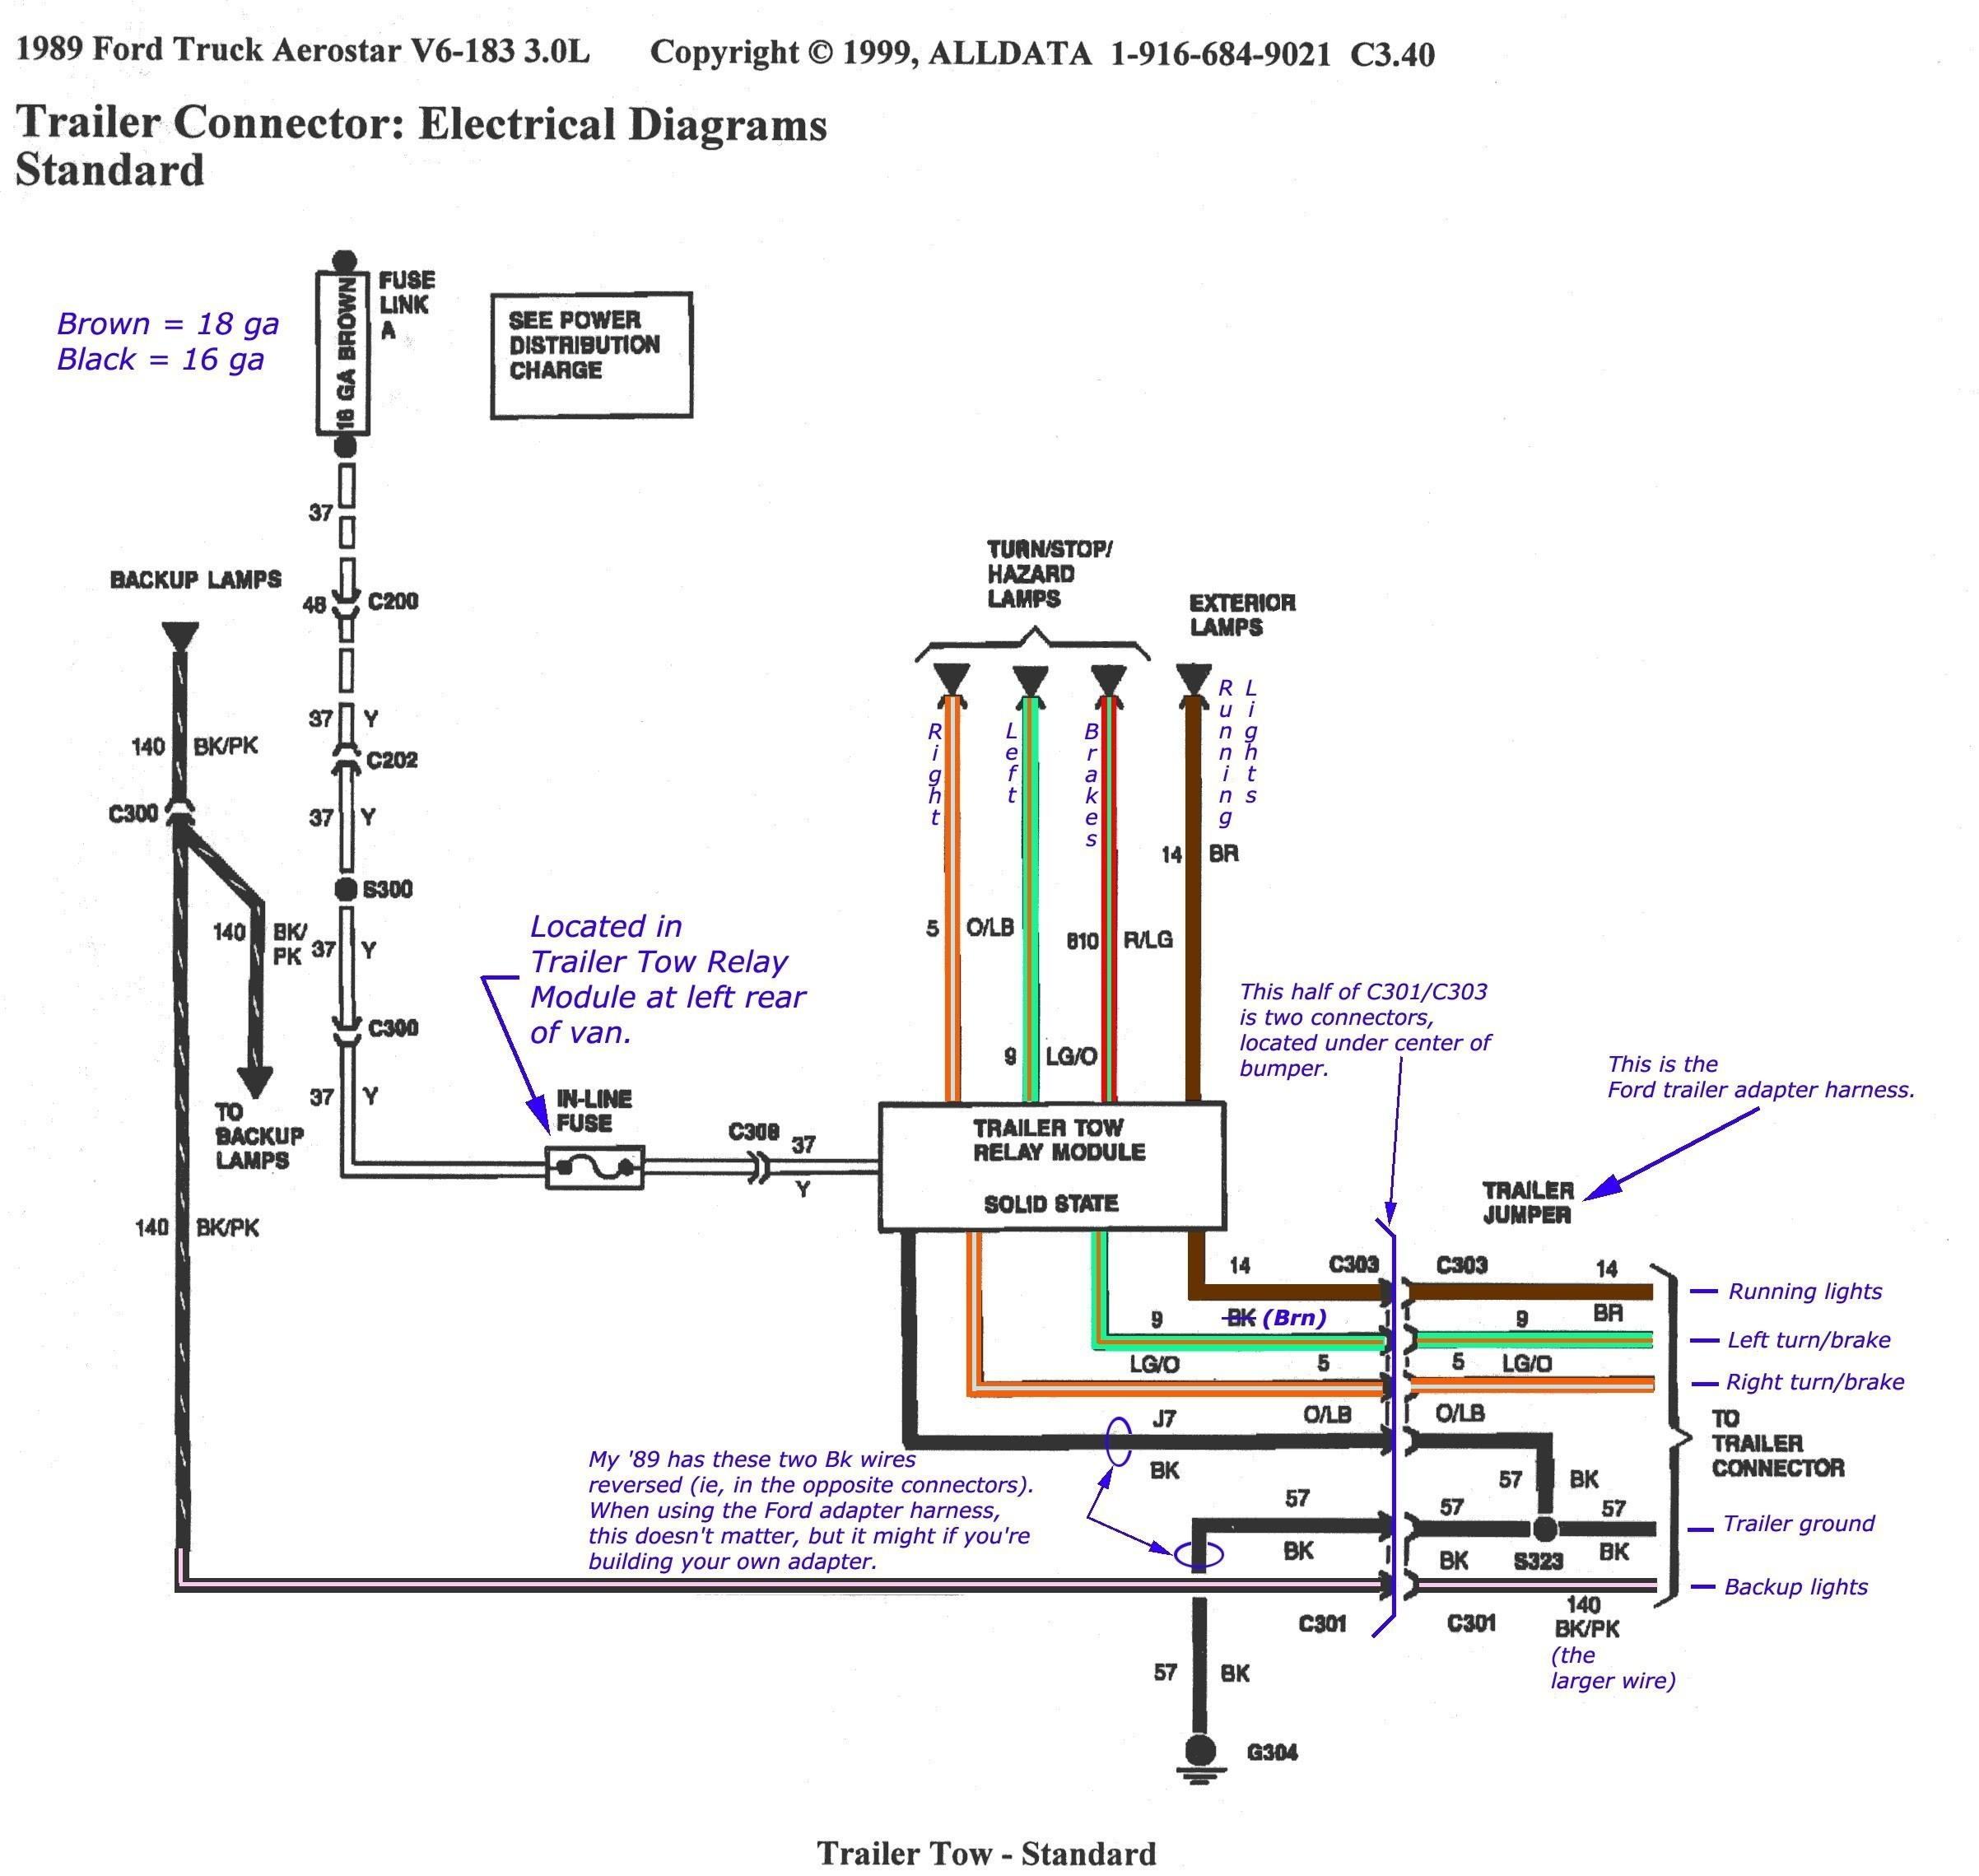 roadmaster wiring diagram 96 buick roadmaster engine diagram roadmaster wiring diode diagram collection #12